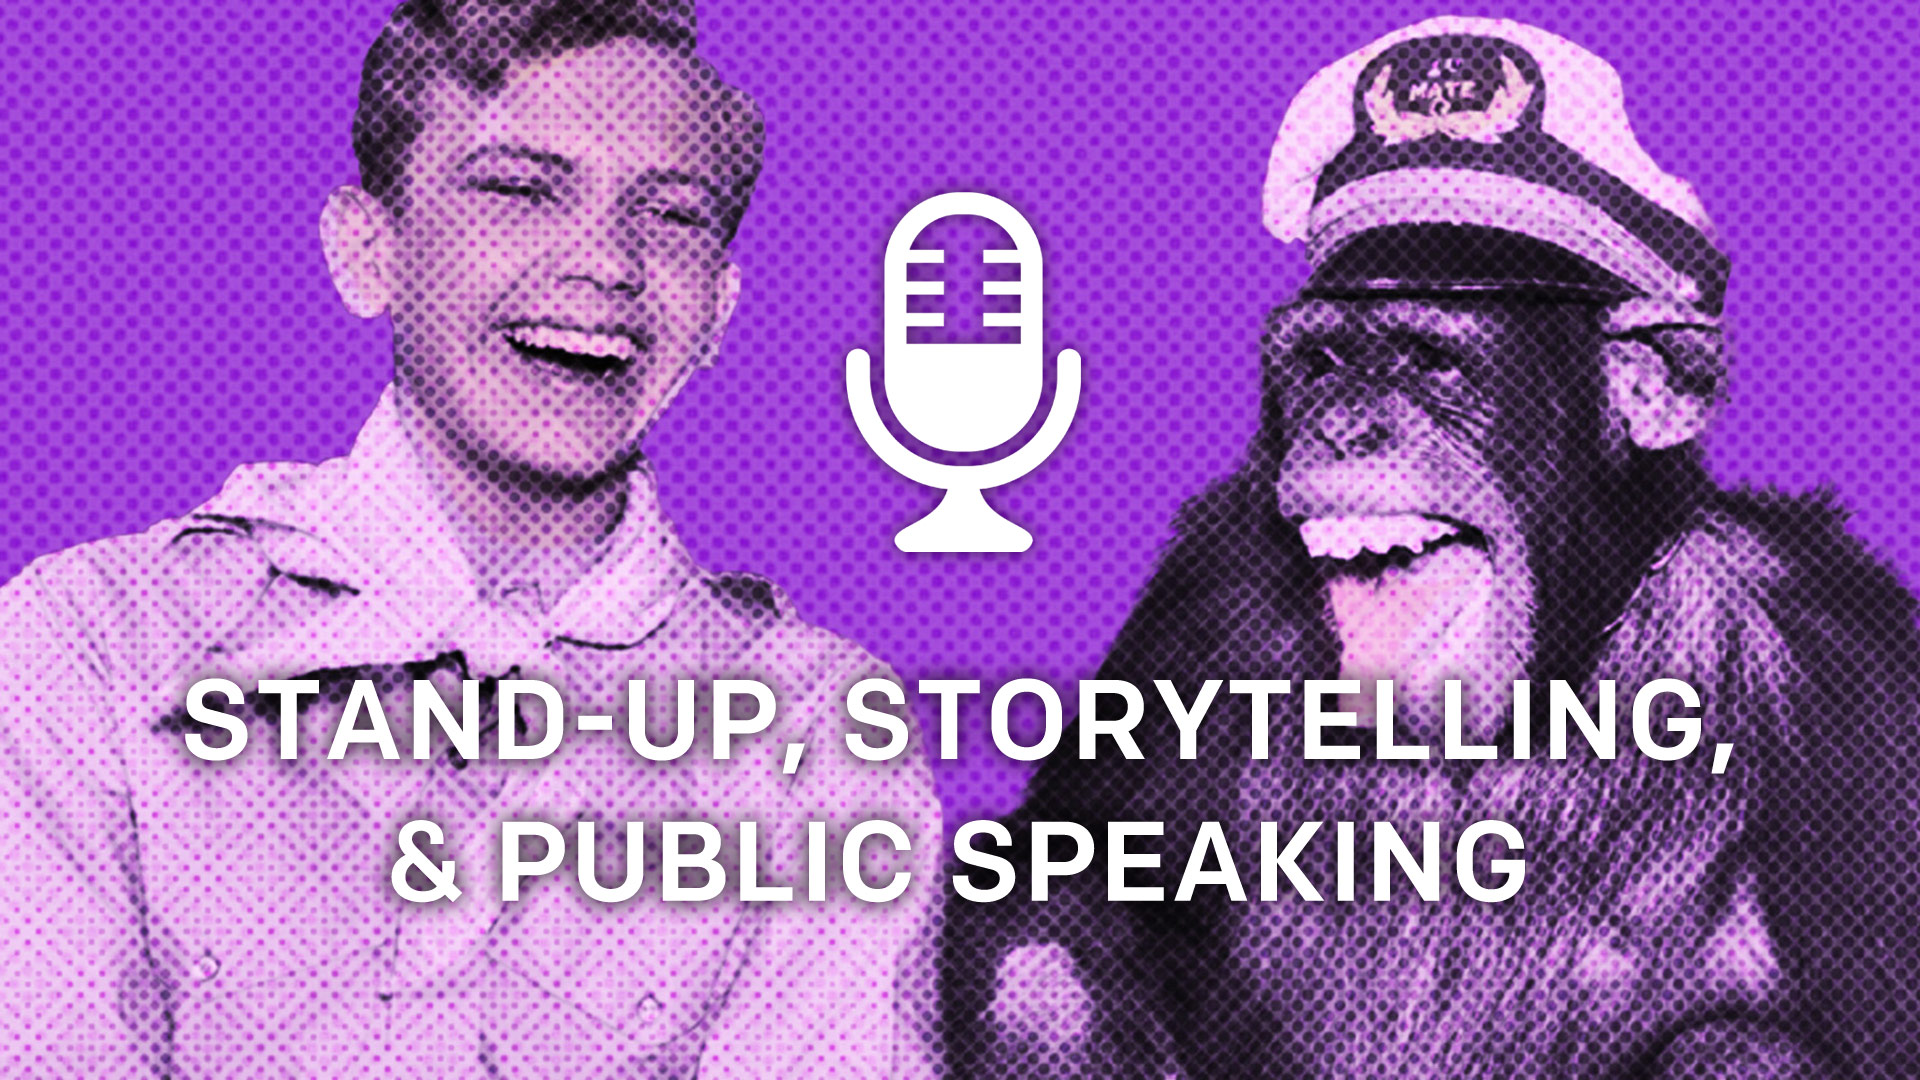 Stand-Up & Storytelling